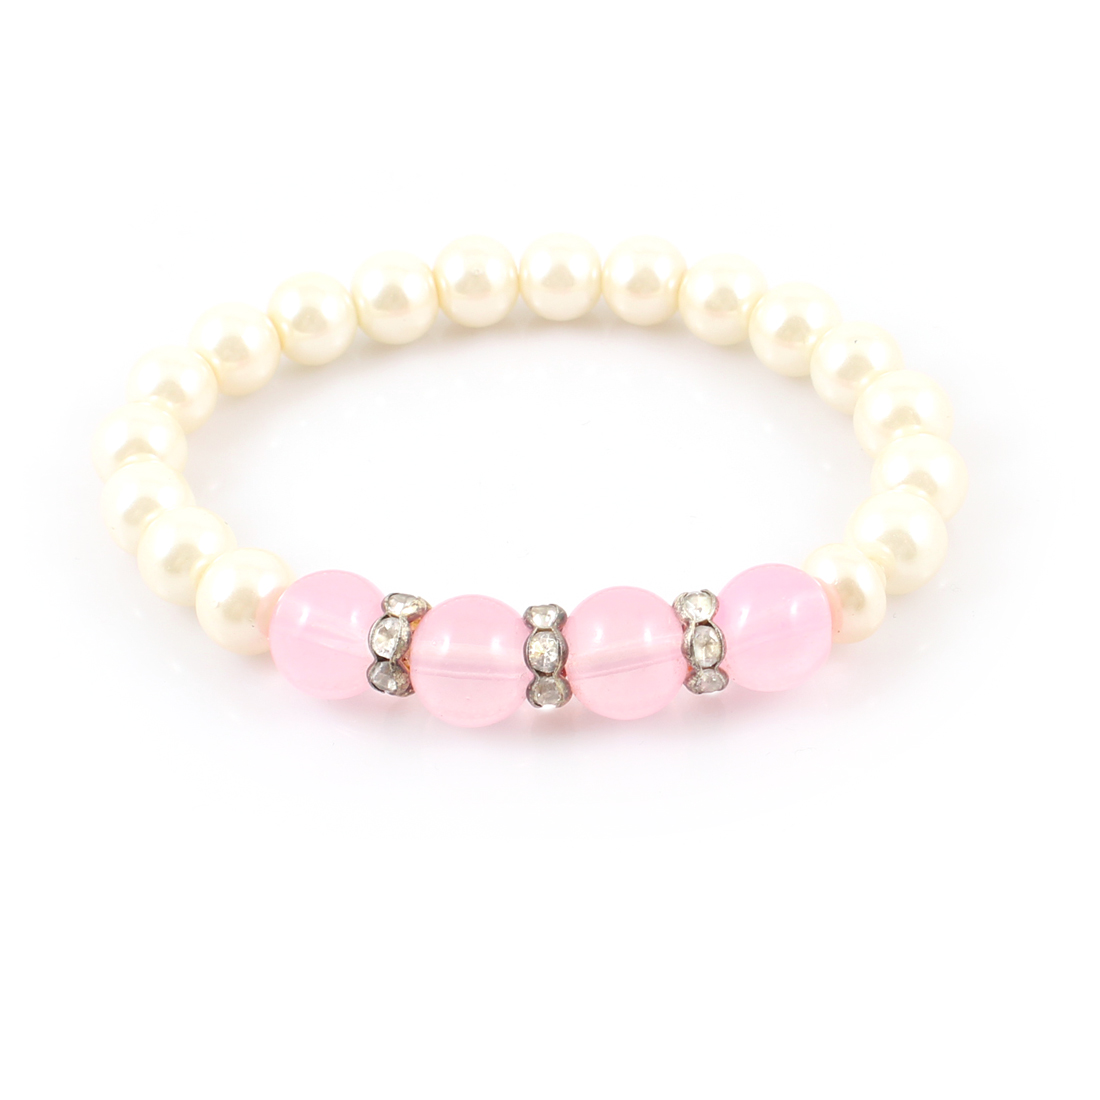 Lady Artificial Plastic Round Imitation Pearl Stretching Bracelet Jewelry Beige Pink